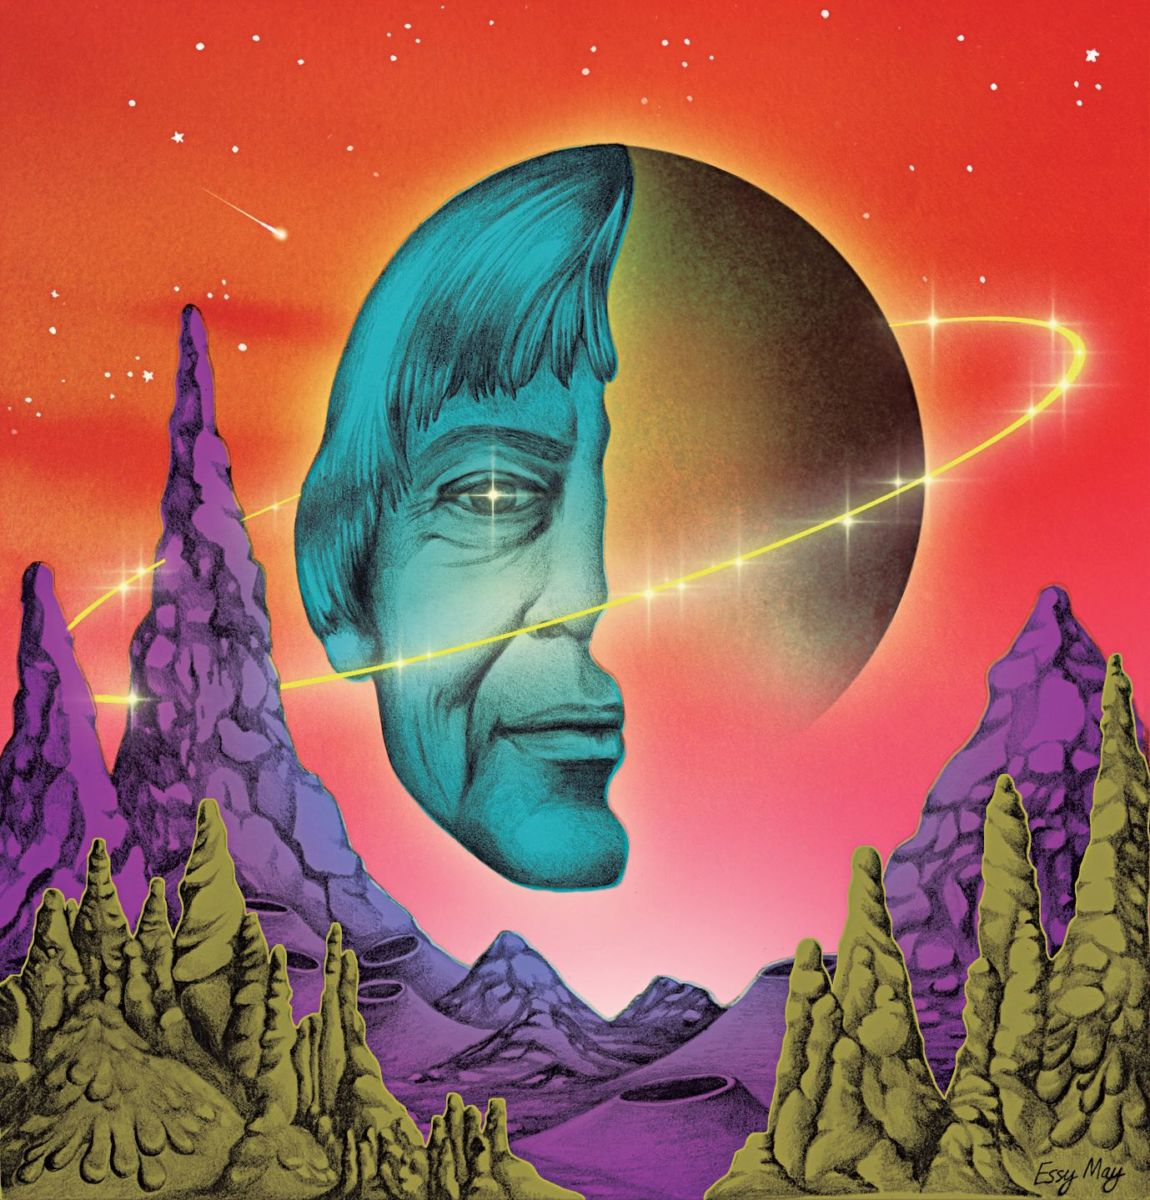 A colourful, sci-fi portrait of Le Guin merged with a ringed planet